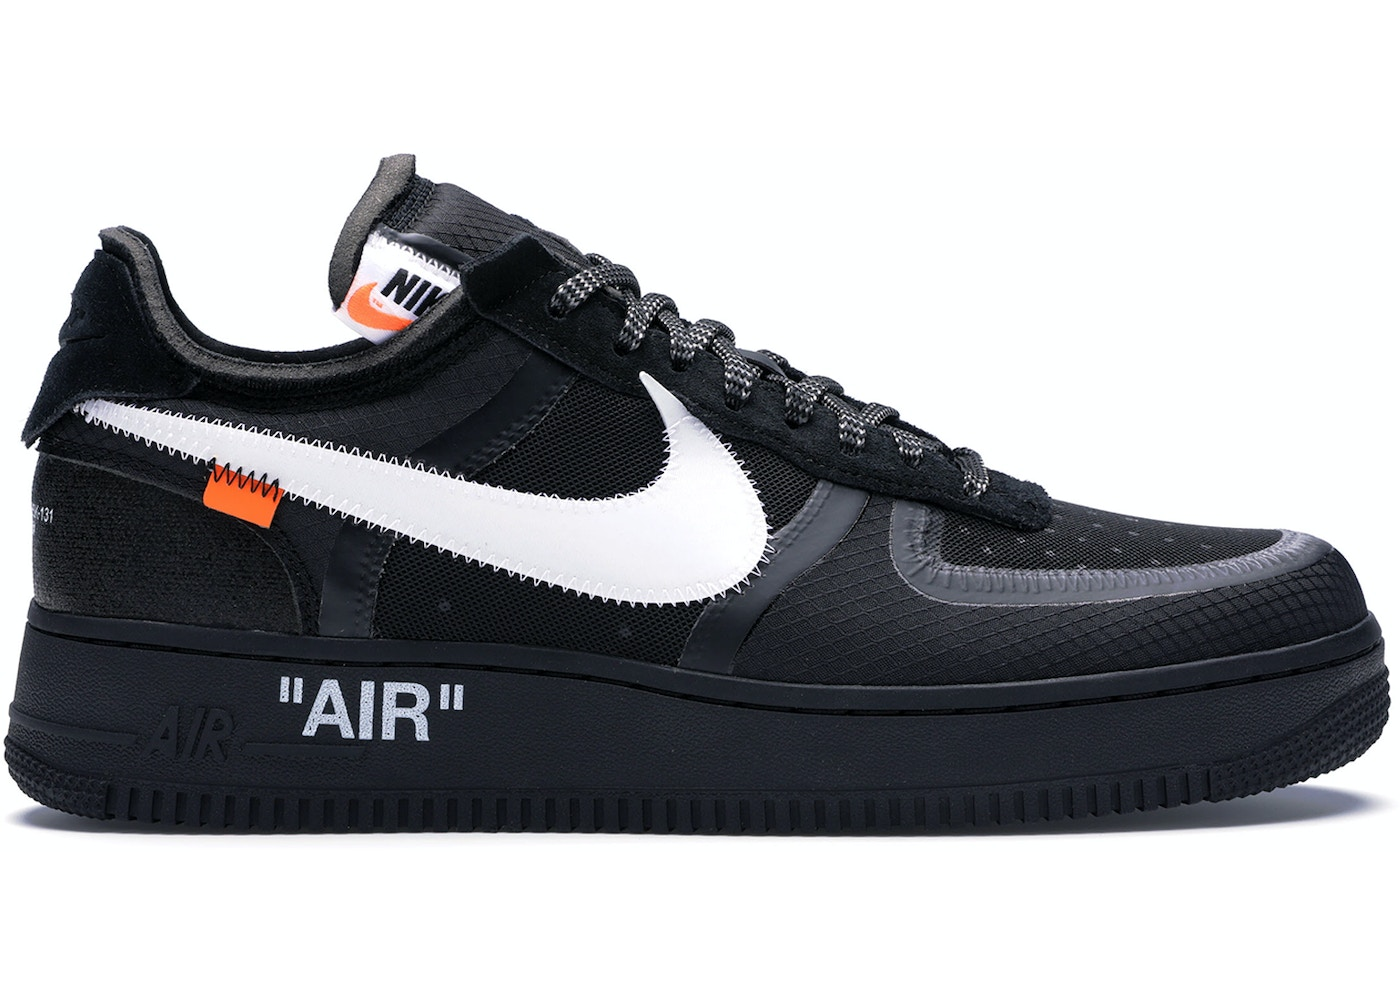 superiore accettabile scemo  Nike Air Force 1 Low Off-White Black White - AO4606-001